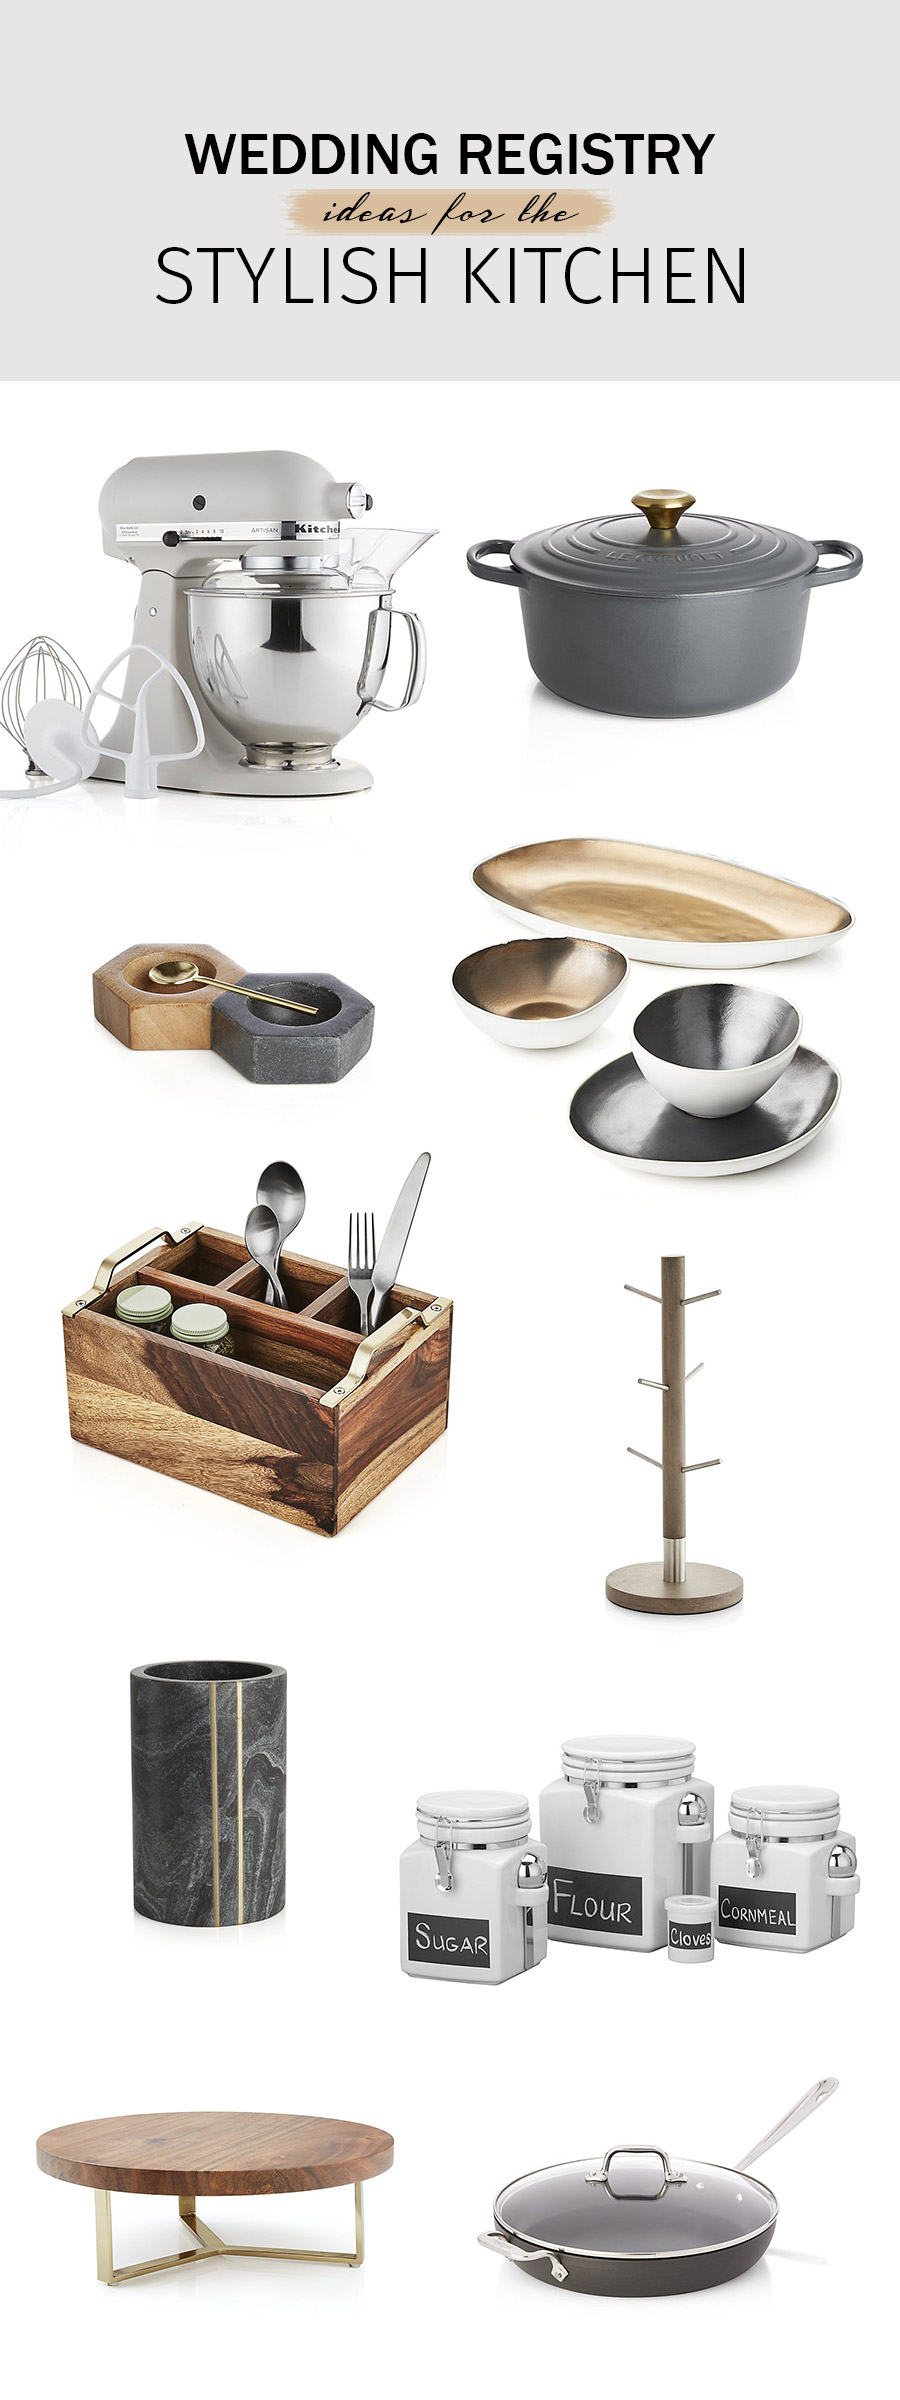 crate and barrel wedding registry ideas 2018 kitchen essentials and stylish entertaining cook prep additions